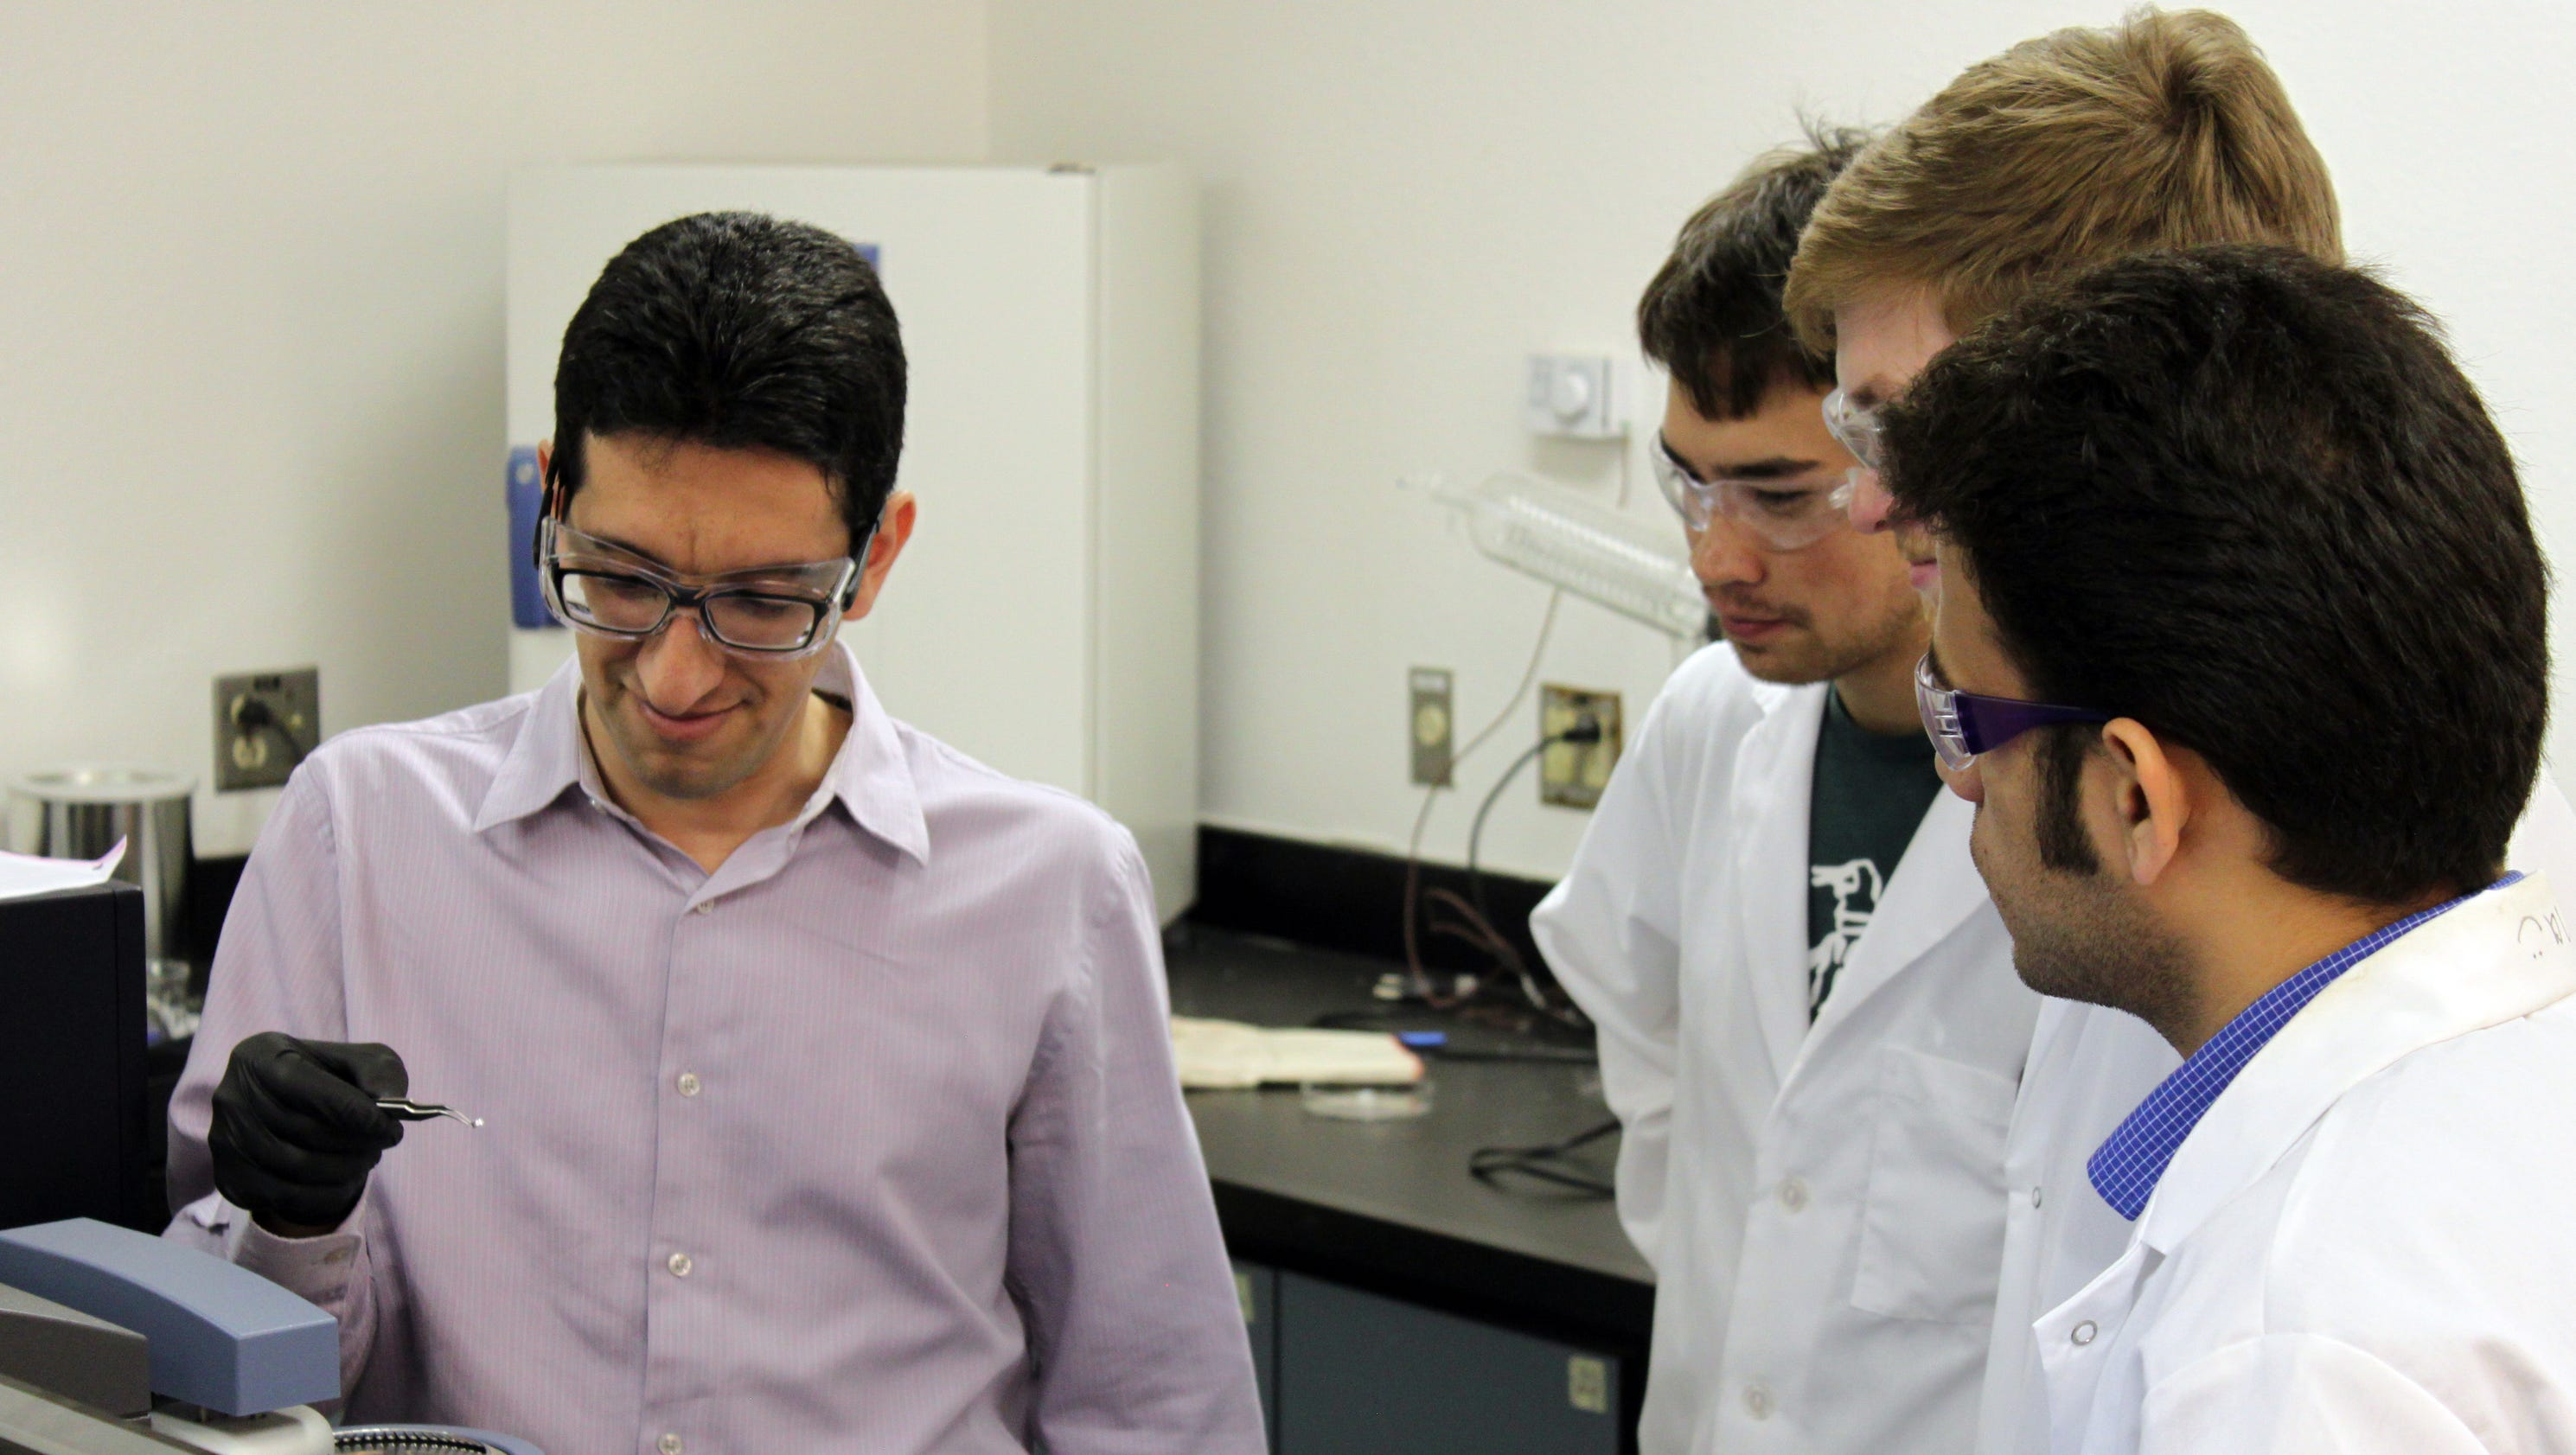 NMSU chemical engineer investigates more efficient, effective water treatment technology